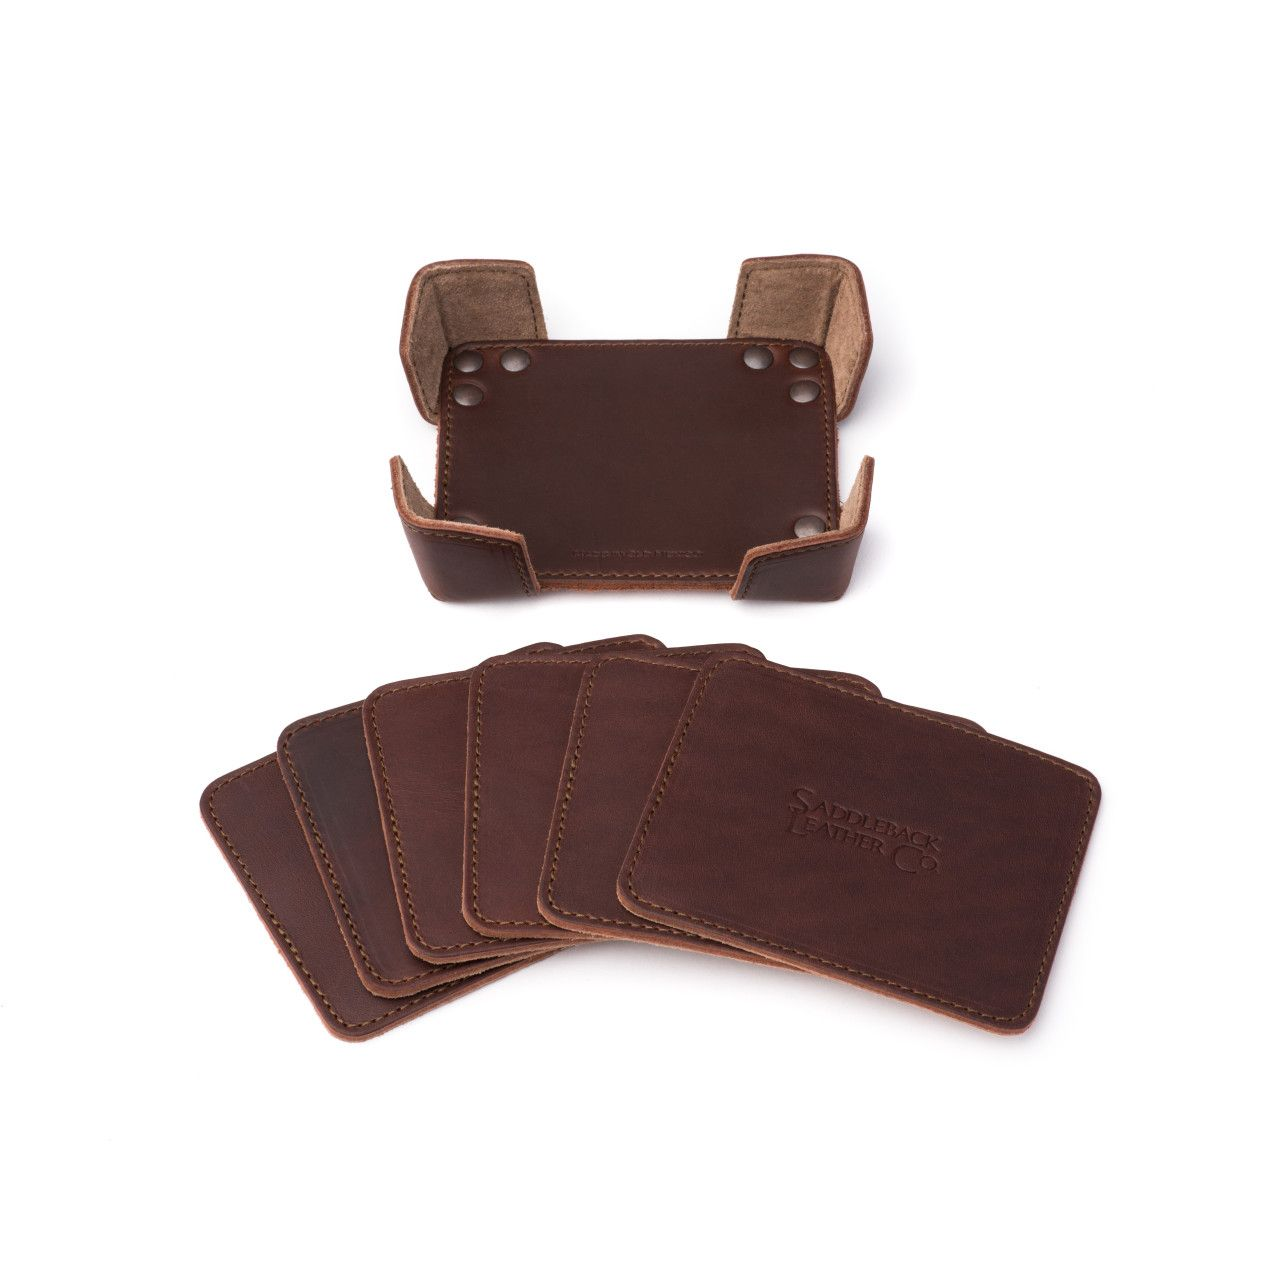 leather coaster set in chestnut leather